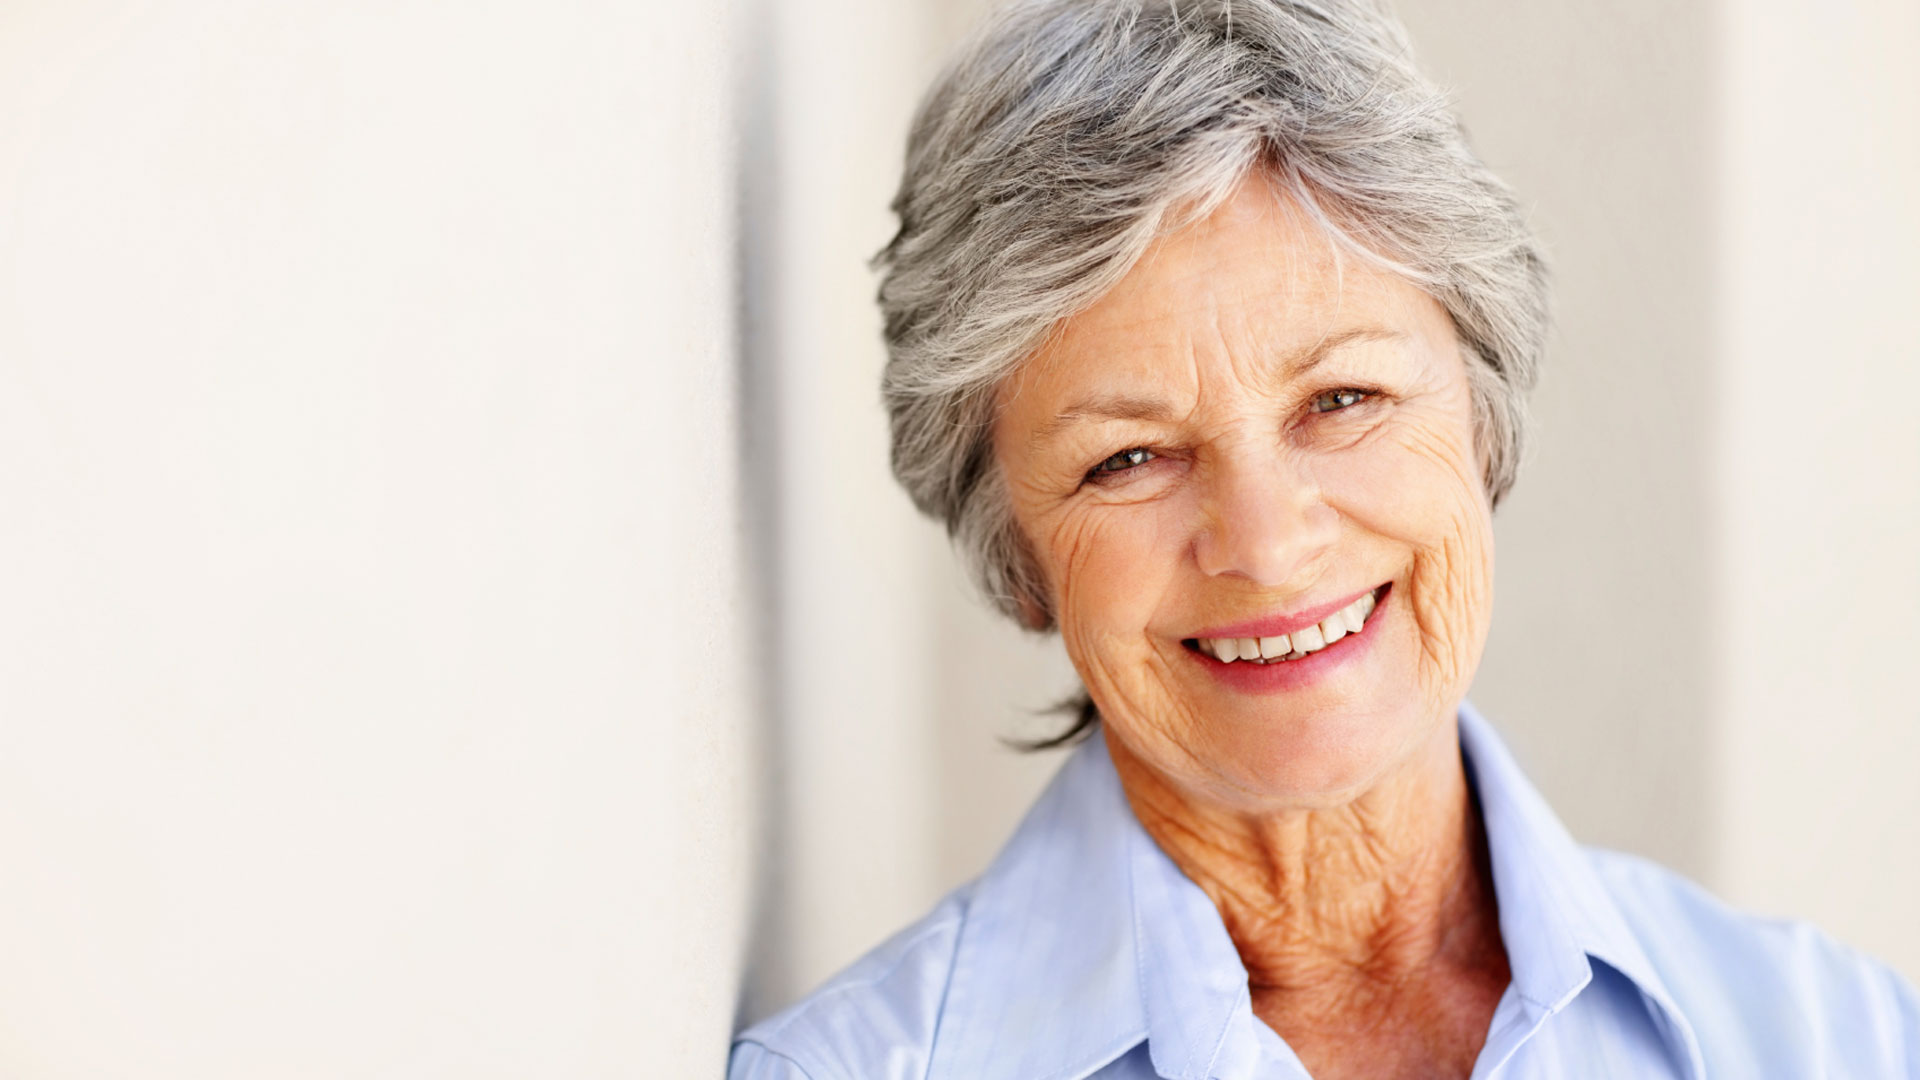 An Integris Surgeon Discusses Safe Nonsurgical Anti Aging